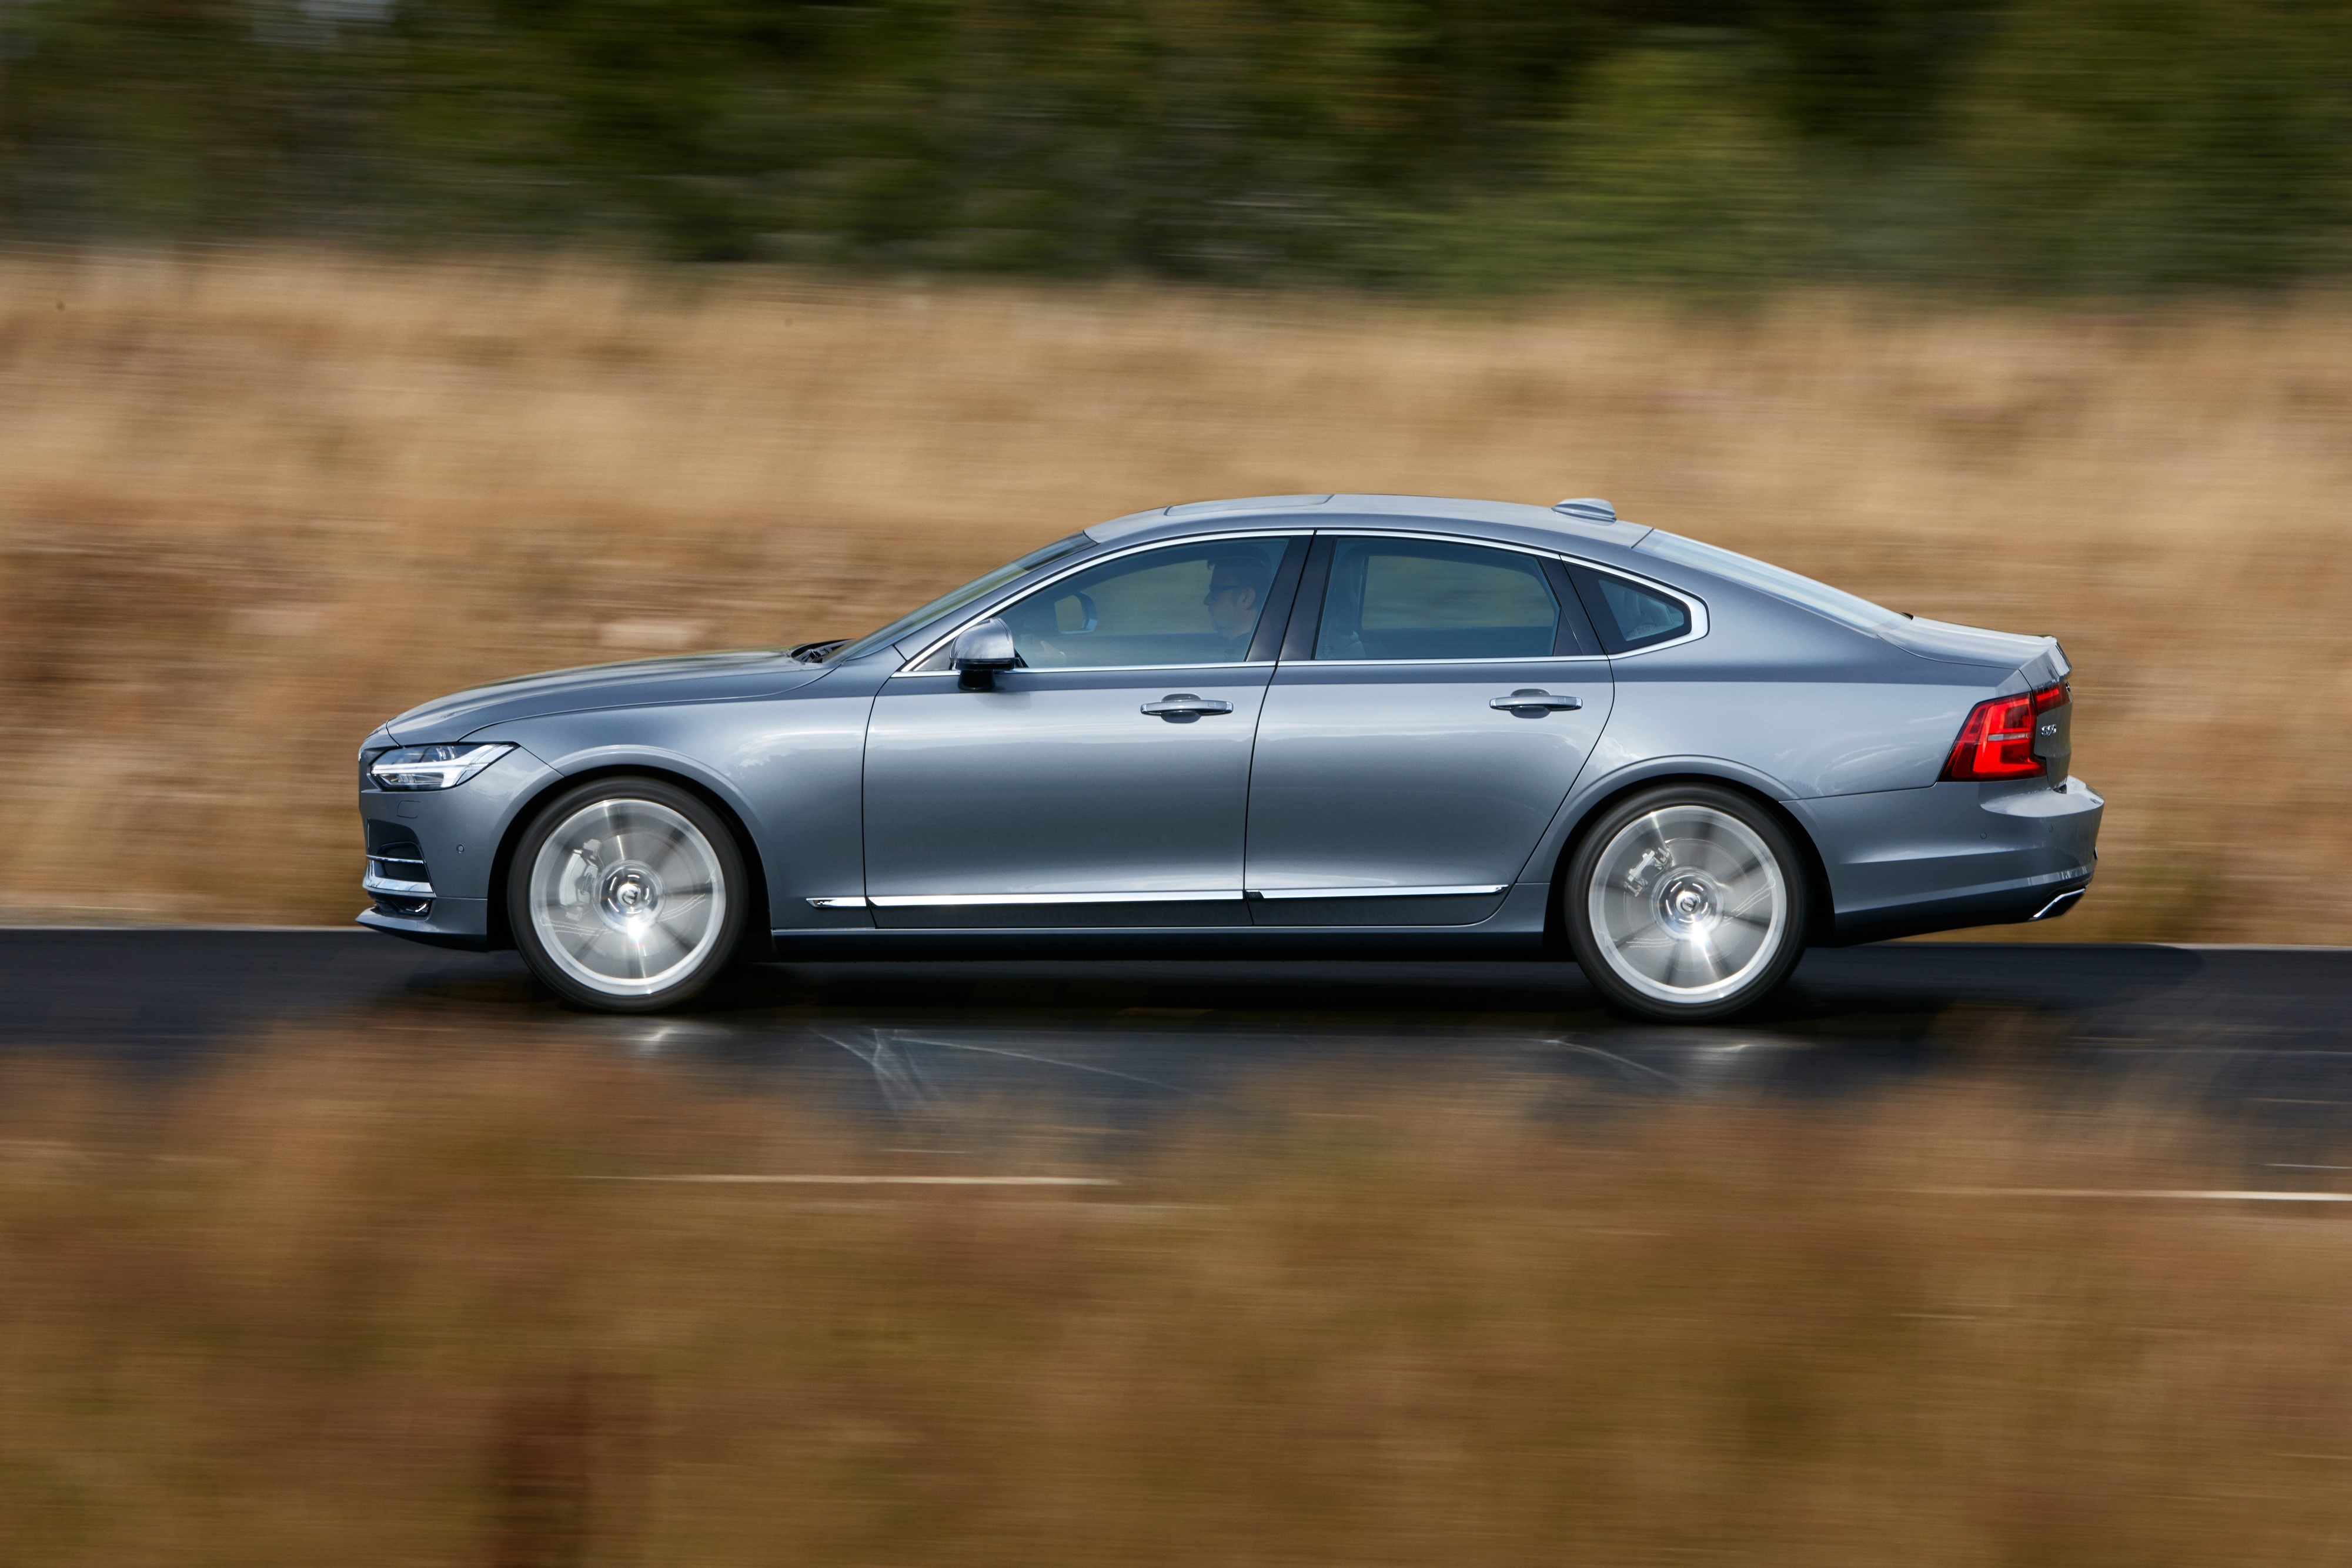 Take advantage of the Volvo S90 Lease Pull Ahead Program for Audi, BMW, Infiniti, Jaguar, Lexus, & Mercedes Benz owners